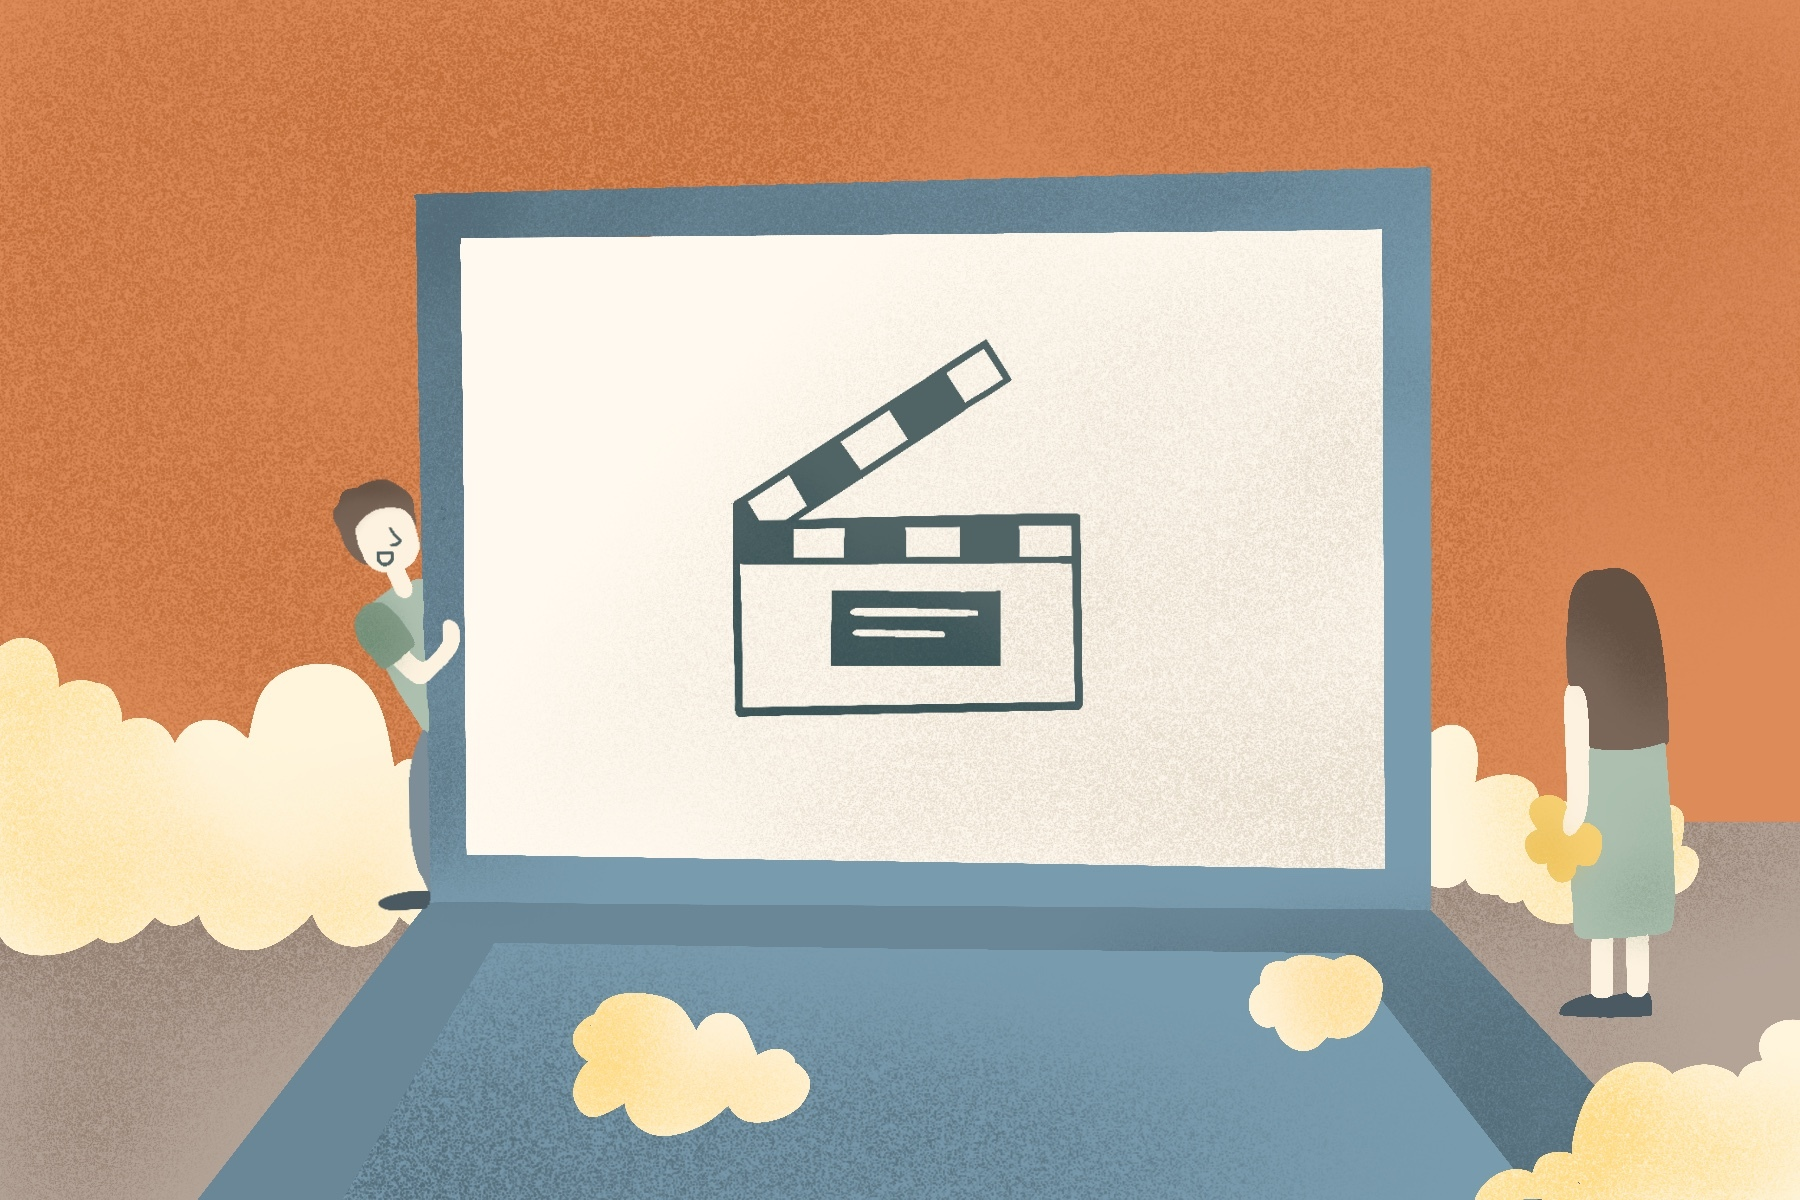 An illustration of a laptop for an article about five free online movies. (Illustration by Sonja Vasiljeva, San Jose State University)